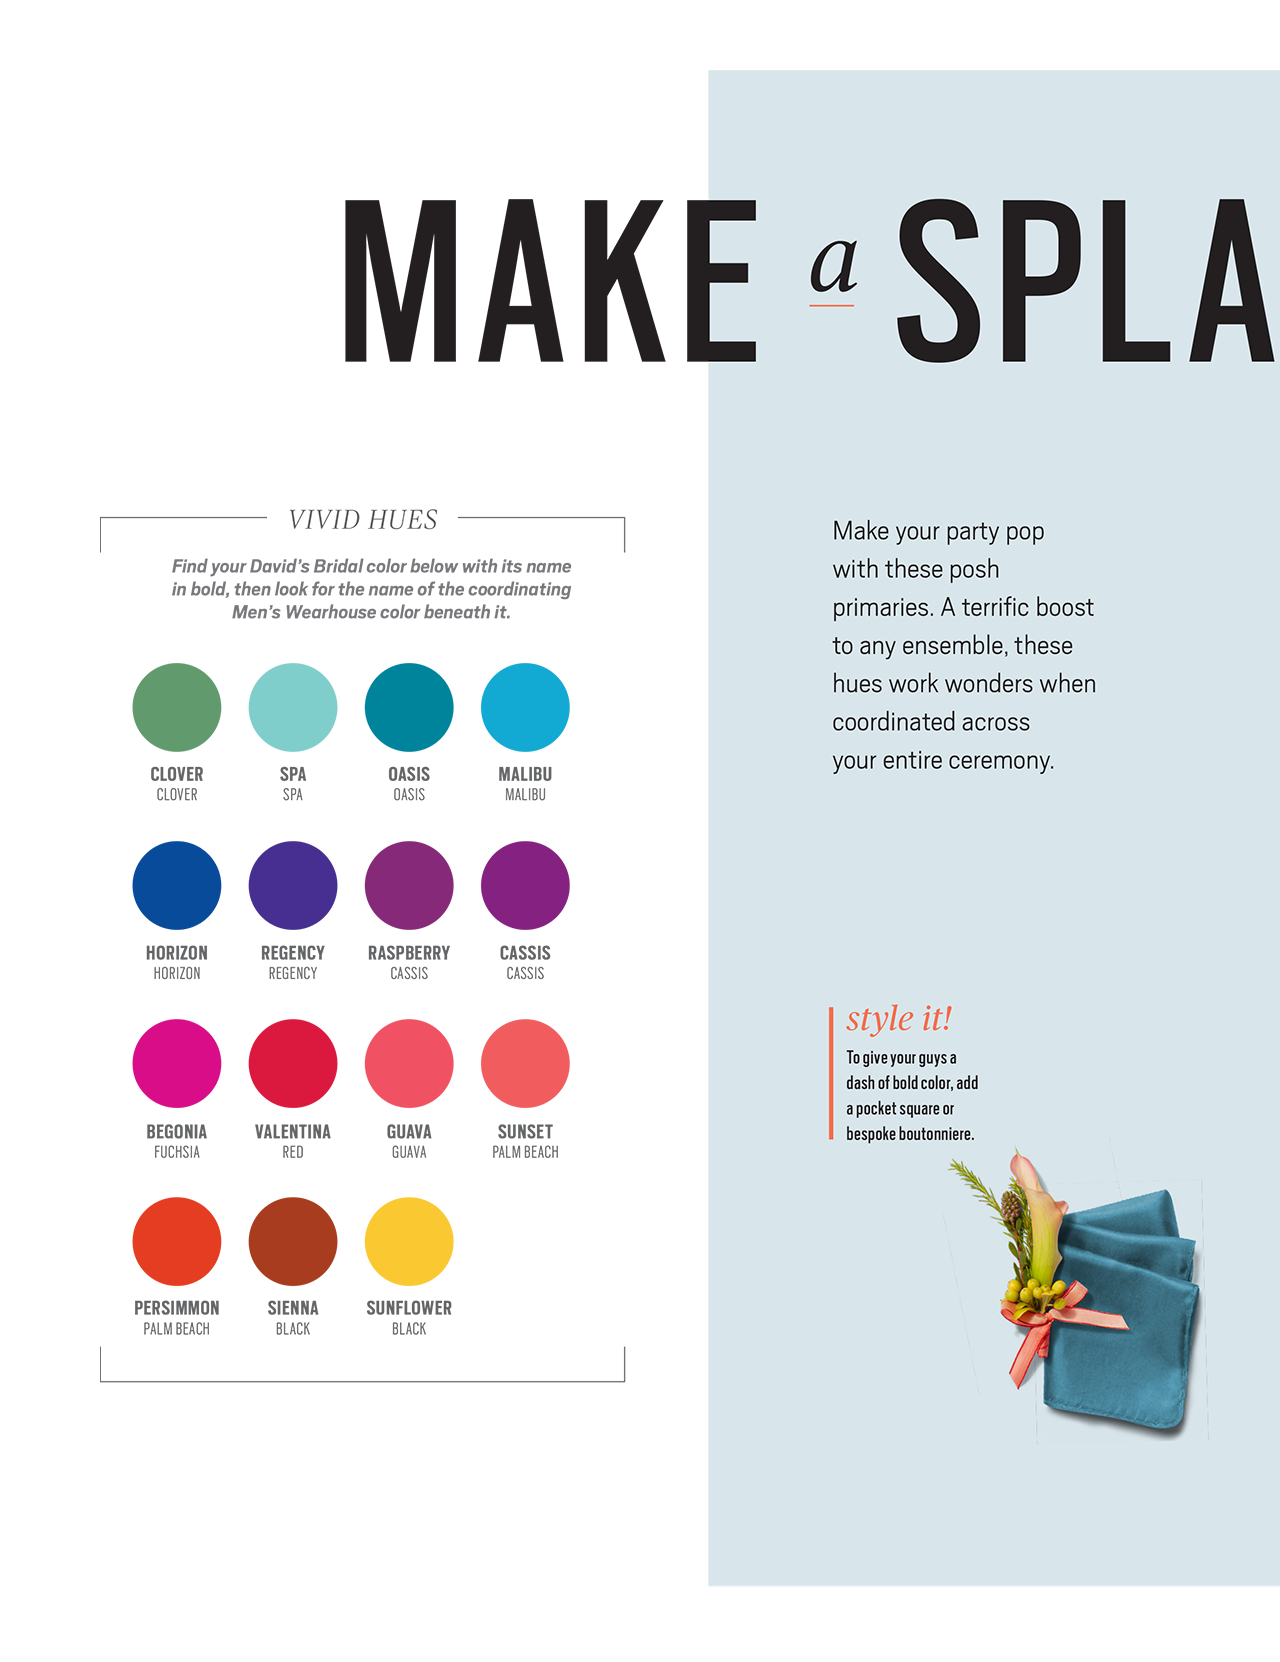 8d79c1a94764 Find a shade that speaks to you? Ready to match some tones? Click on the  link below and let's get coordinating!